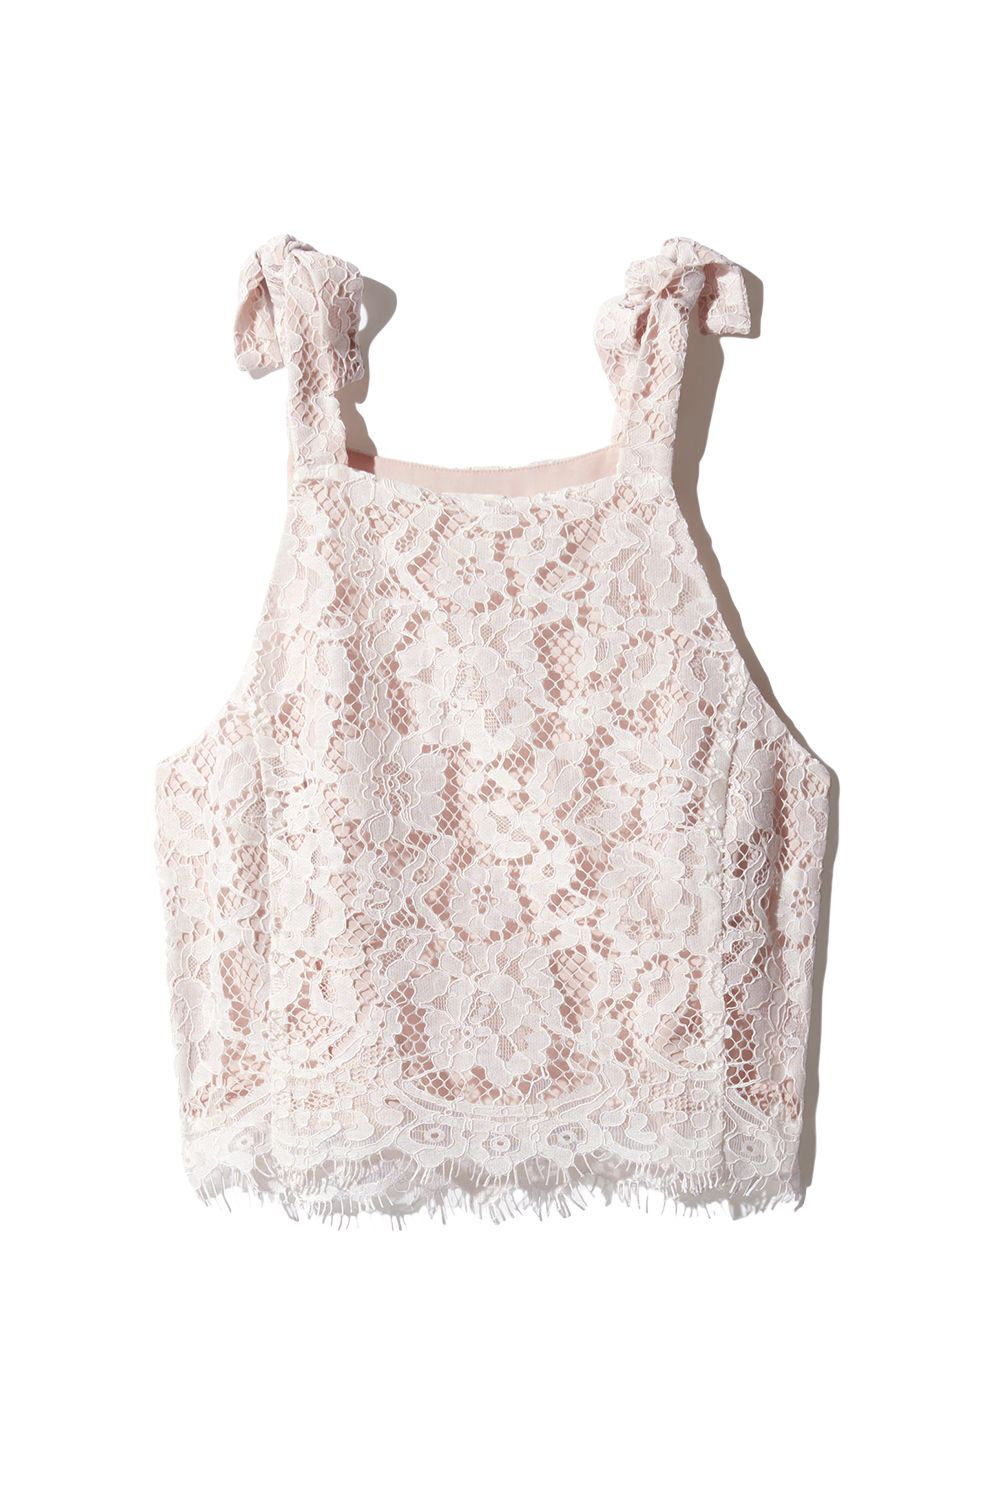 "<p>Like they googled ""What do millennials like?"" and mashed the top results (pink, lace, shoulder ties) together. </p><p>Aritzia, $60; <a href=""http://us.aritzia.com/product/devere-blouse/62855.html?dwvar_62855_color=6824"" target=""_blank"" data-tracking-id=""recirc-text-link"">aritzia.com</a>.</p>"